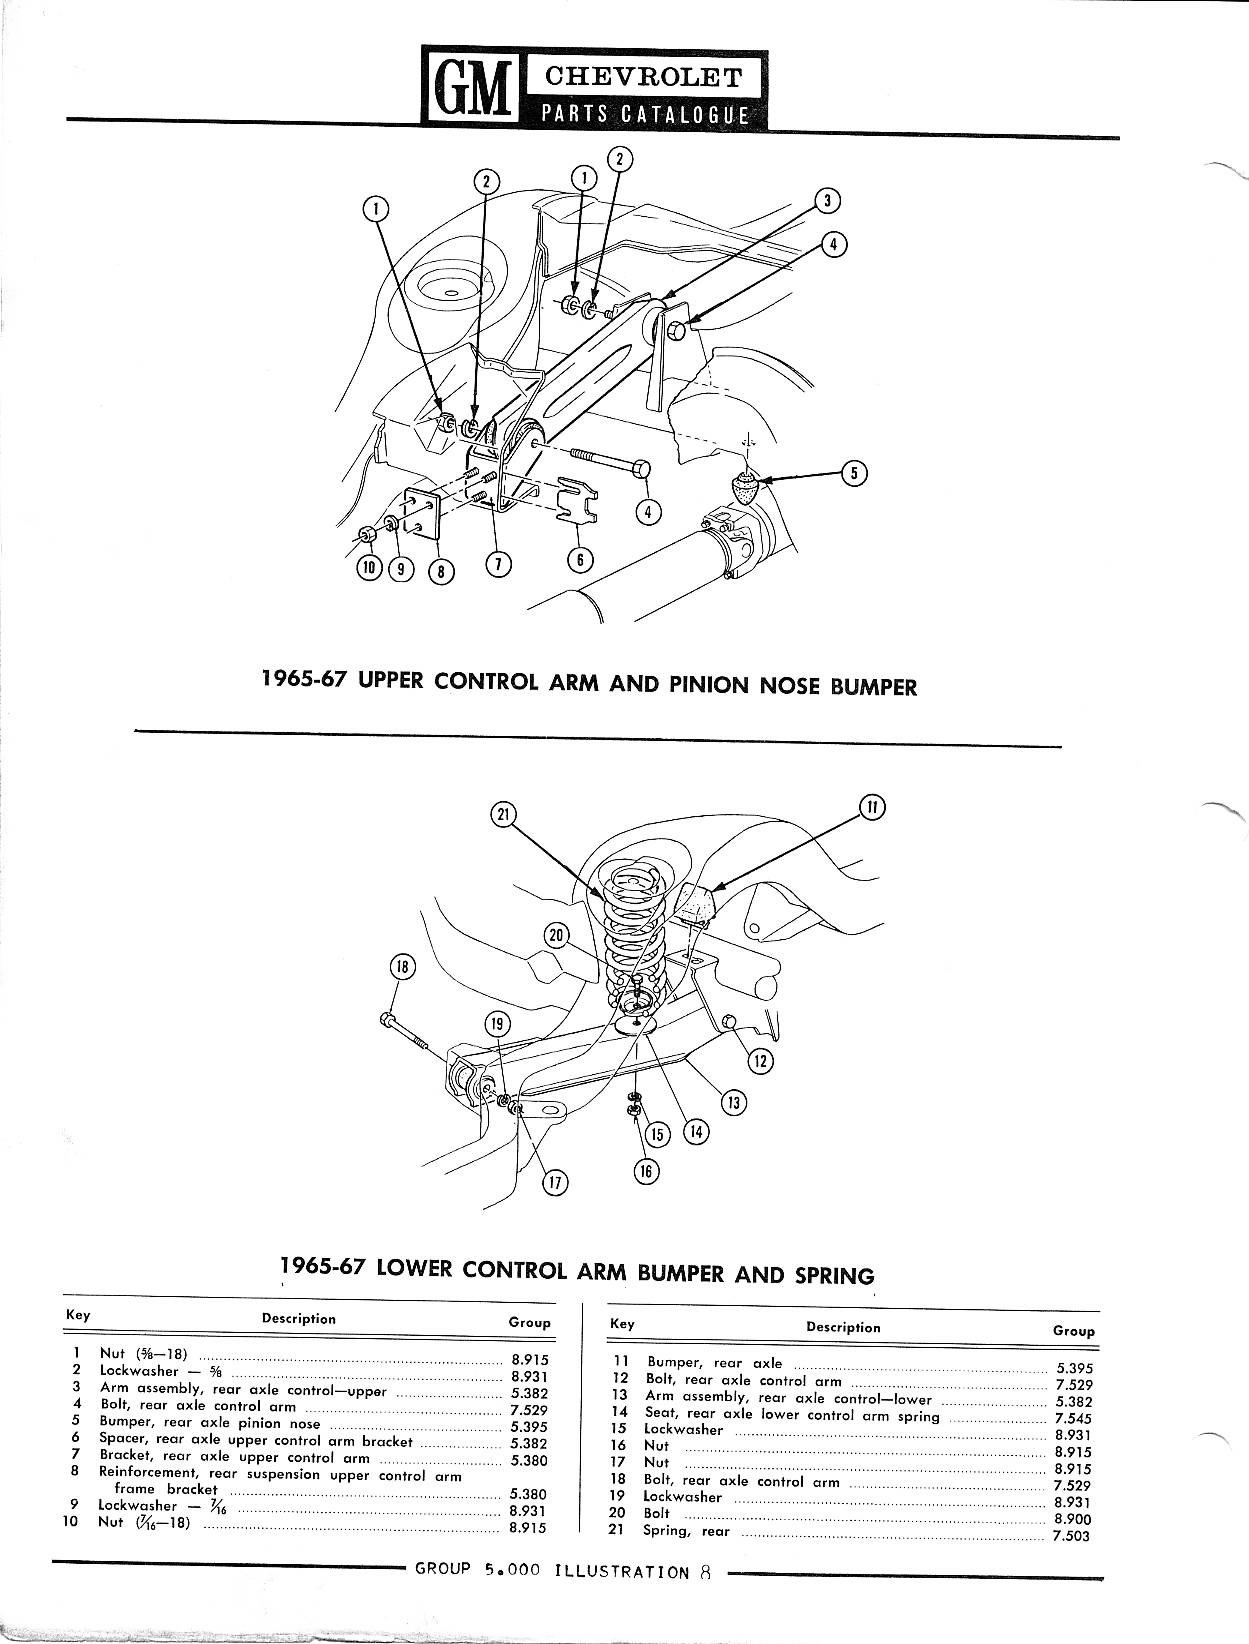 Catalog3 furthermore 1958 1967 2chevrolet Chevy Parts And Illustration Catalog moreover Image25 as well Rolls Royce Parts Html in addition Catalog3. on 1958 chevy parts catalog